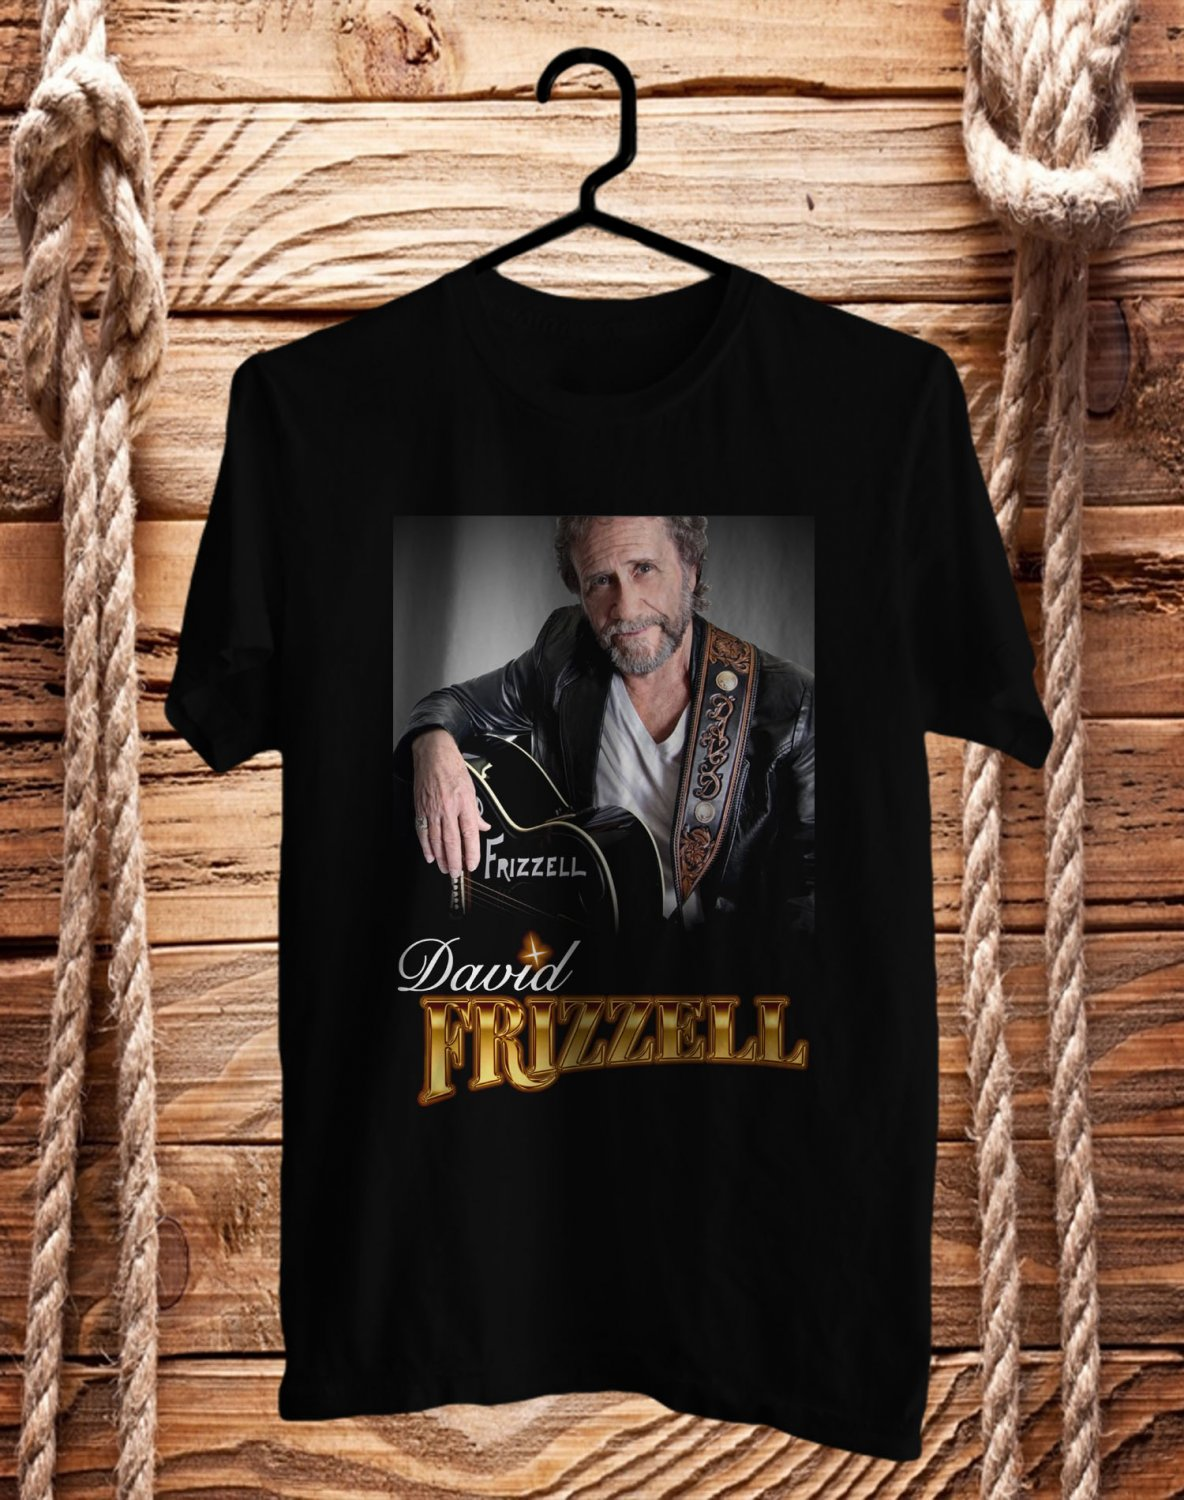 David Frizzell Tour 2017 Black Tee's Front Side by Complexart